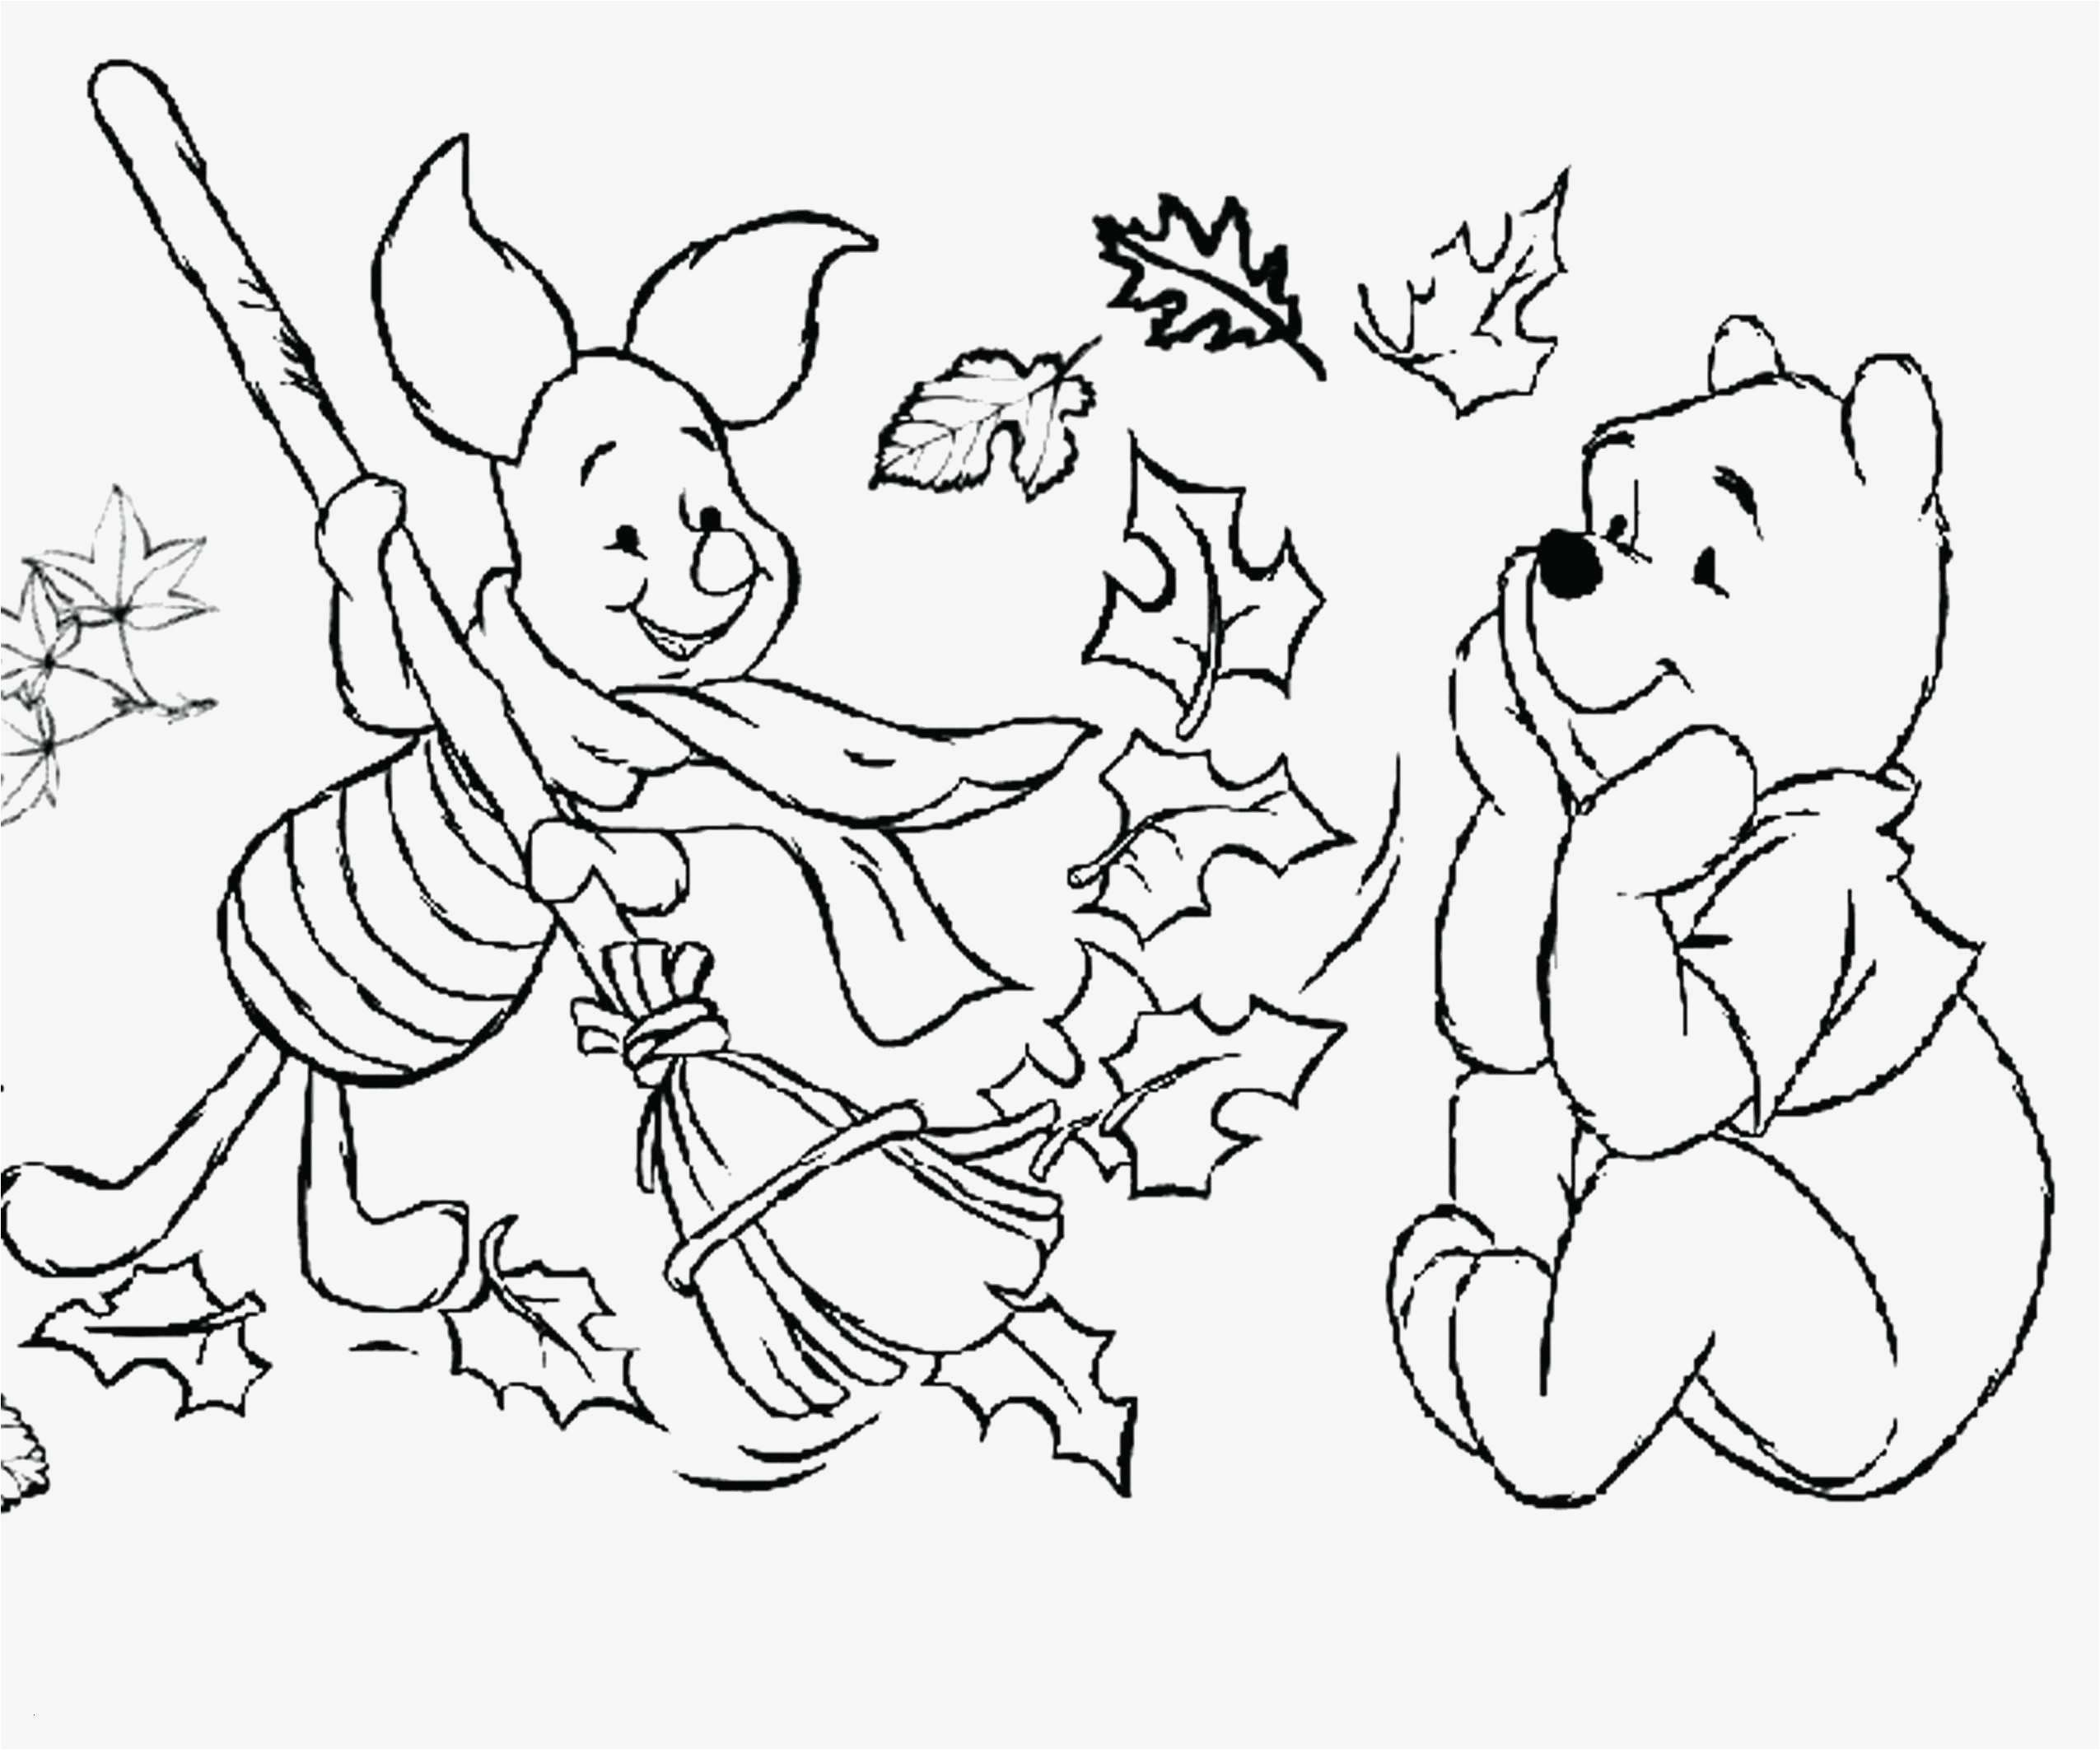 Coloring Pages Of Kittens  Gallery 15o - Free For Children